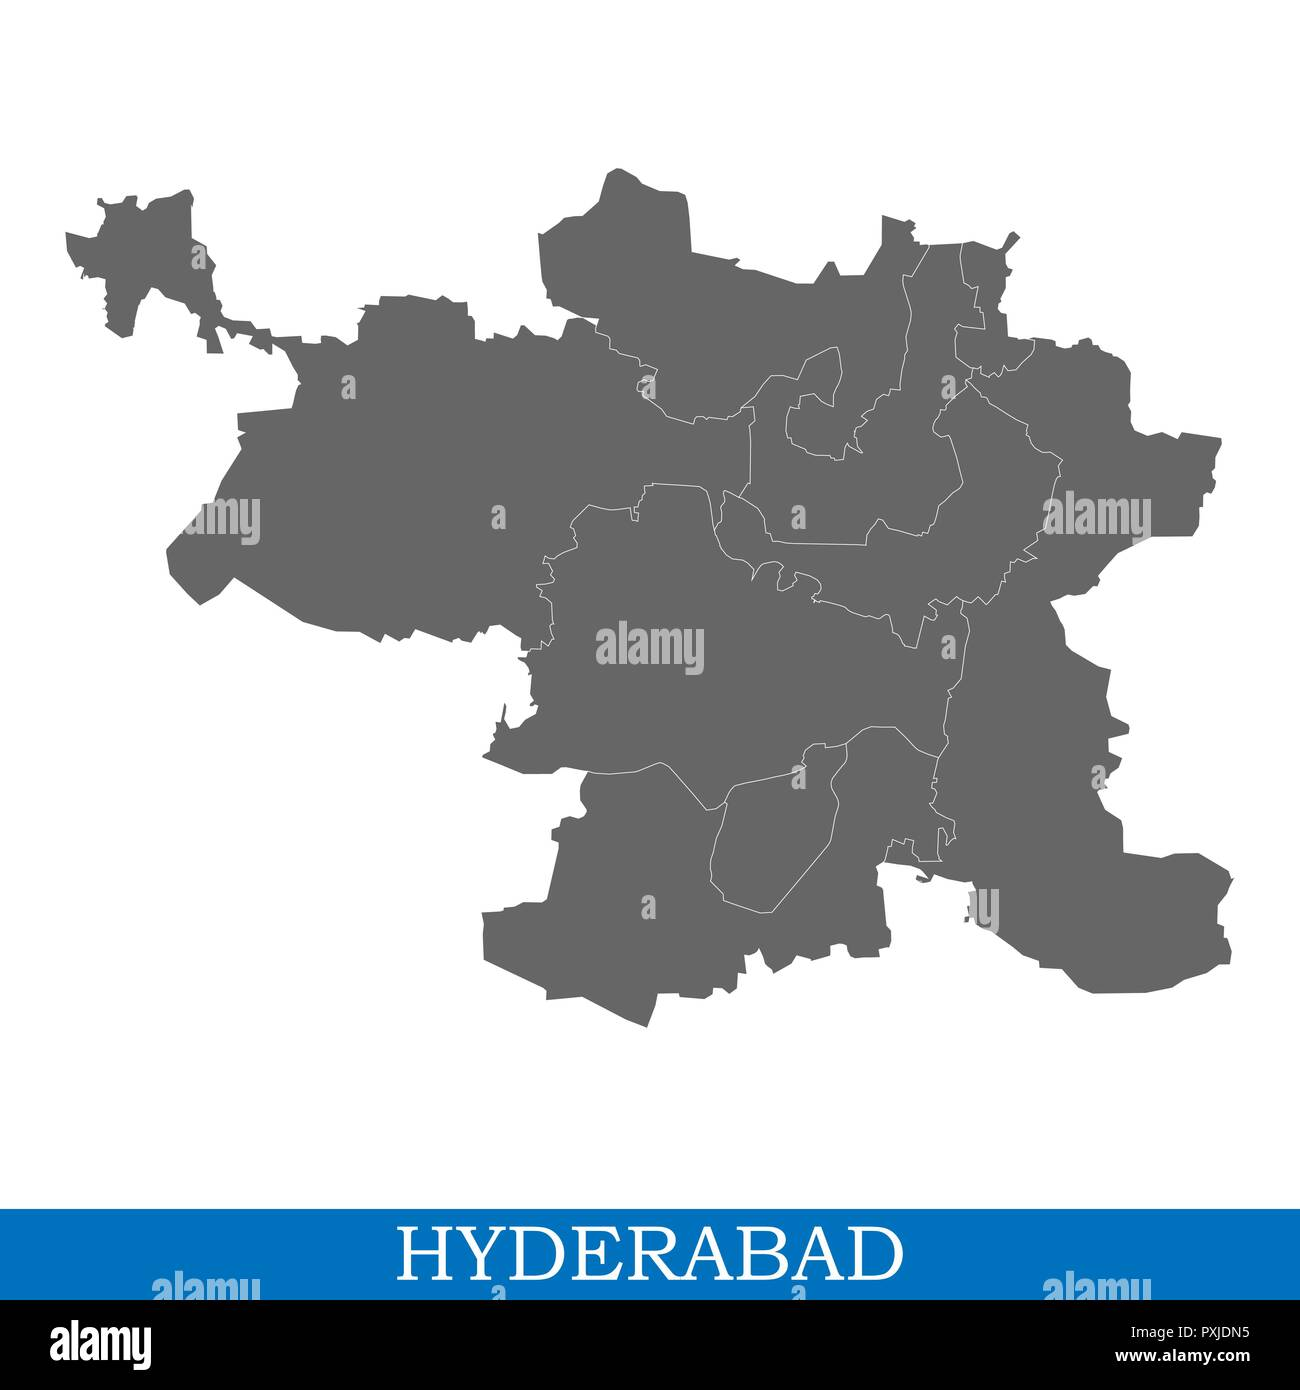 Where Is Hyderabad Located In India Map.High Quality Map Of Hyderabad Is A City Of India With Borders Of